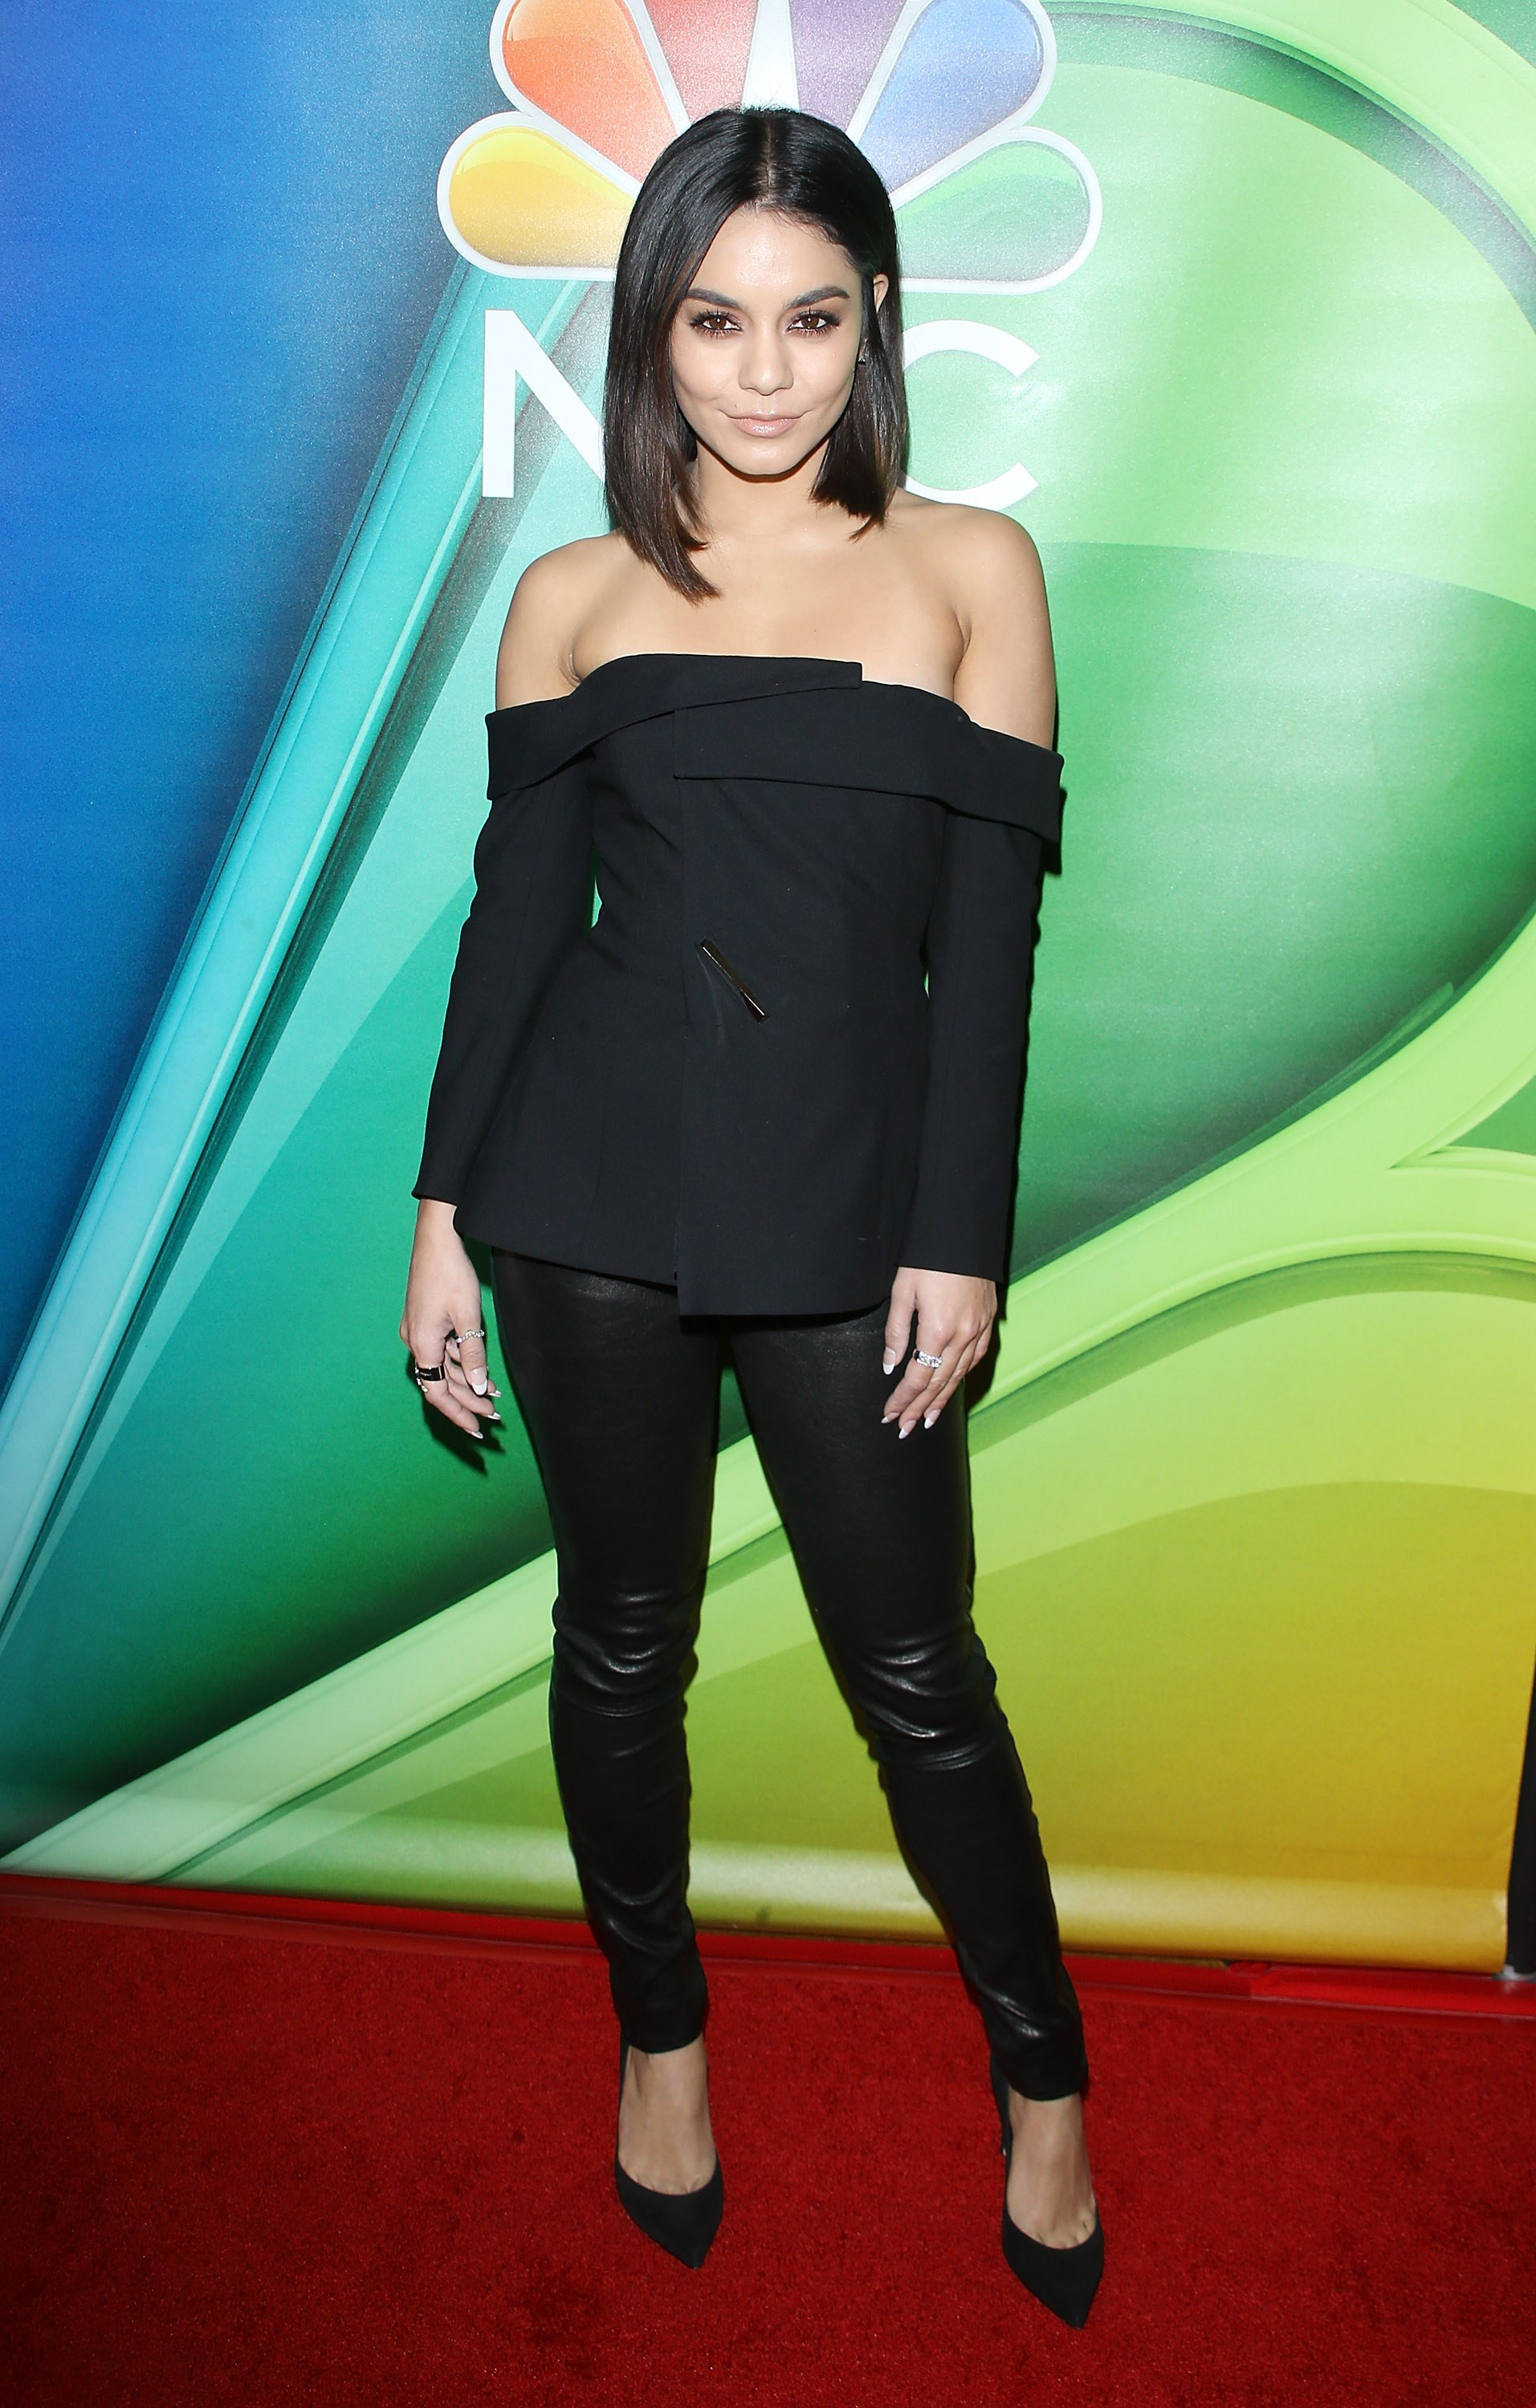 Vanessa Hudgens just channelled Sandra Dee from *Grease* in this off-the-shoulder black top, fitted pants and DGAF heel combo (despite actually playing the role of Rizzo in the [Grease Live](http://www.cosmopolitan.com.au/celebrity/vanessa-hudgens-grease-live-there-are-worse-things-i-could-do-6873) show) and yep, she totally #nailedit.